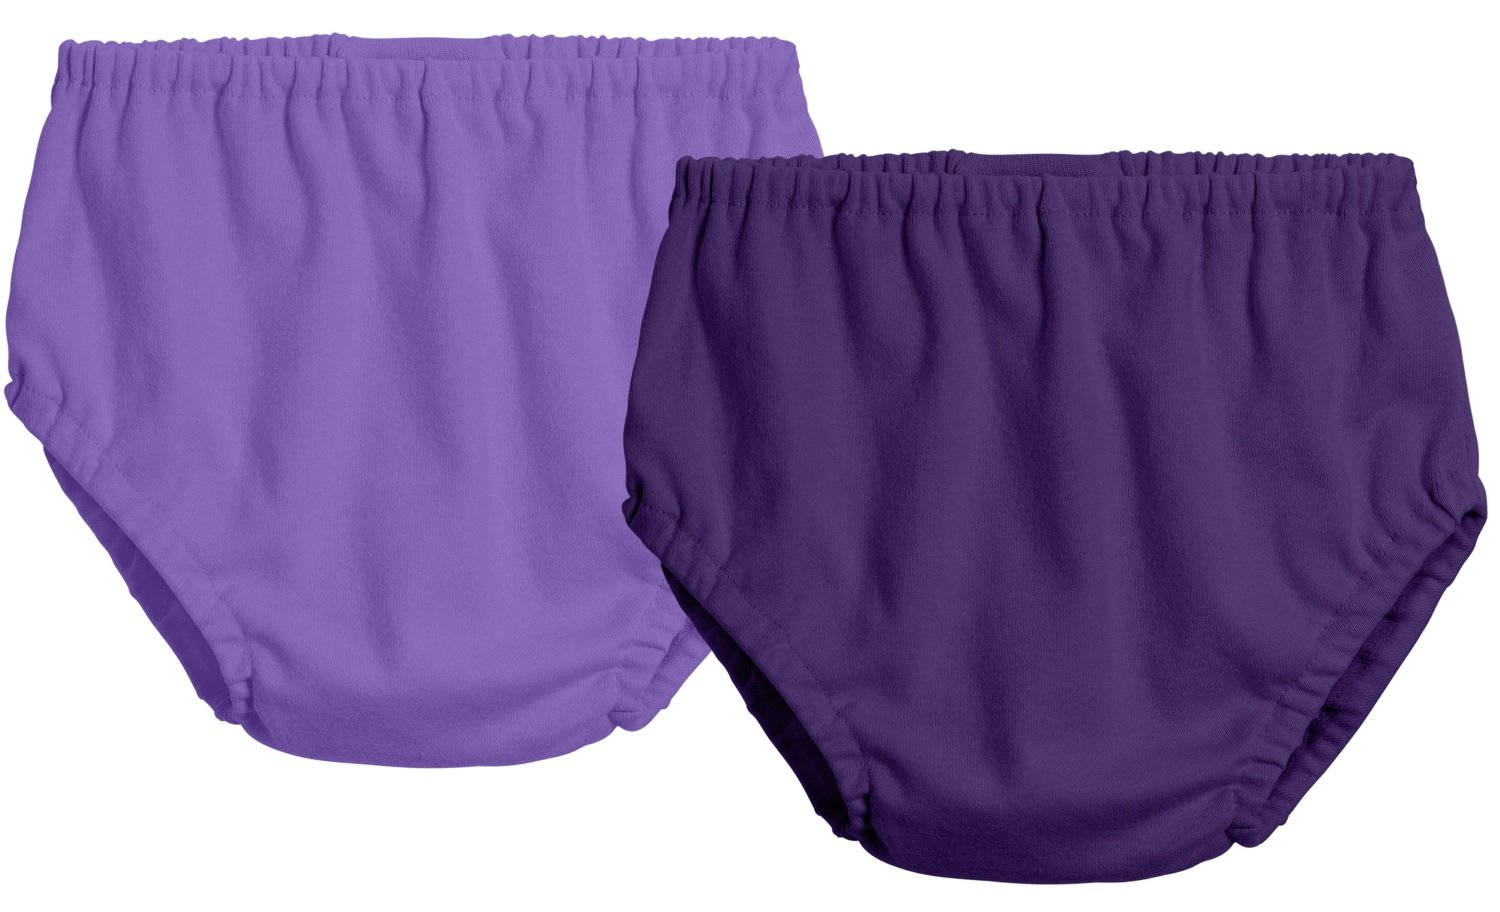 City Threads 2-Pack Baby Girls' and Baby Boys' Unisex Diaper Covers Bloomers Soft Cotton, Deep Purple/Purple, 4T